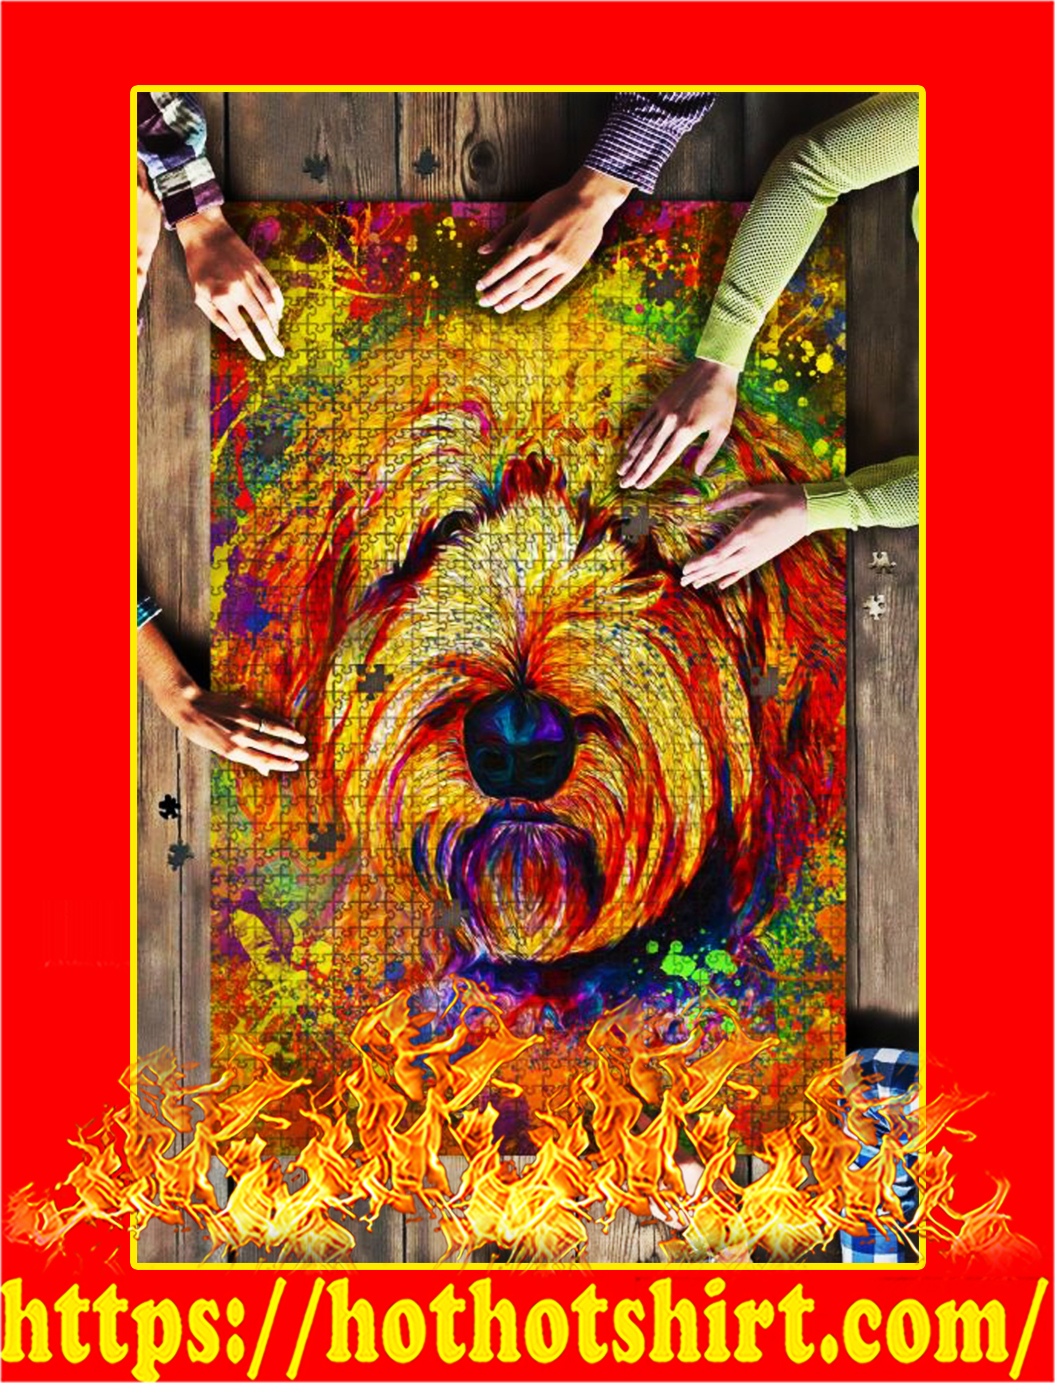 Goldendoodle Dog Colorful Jigsaw Puzzle - 1000 pieces